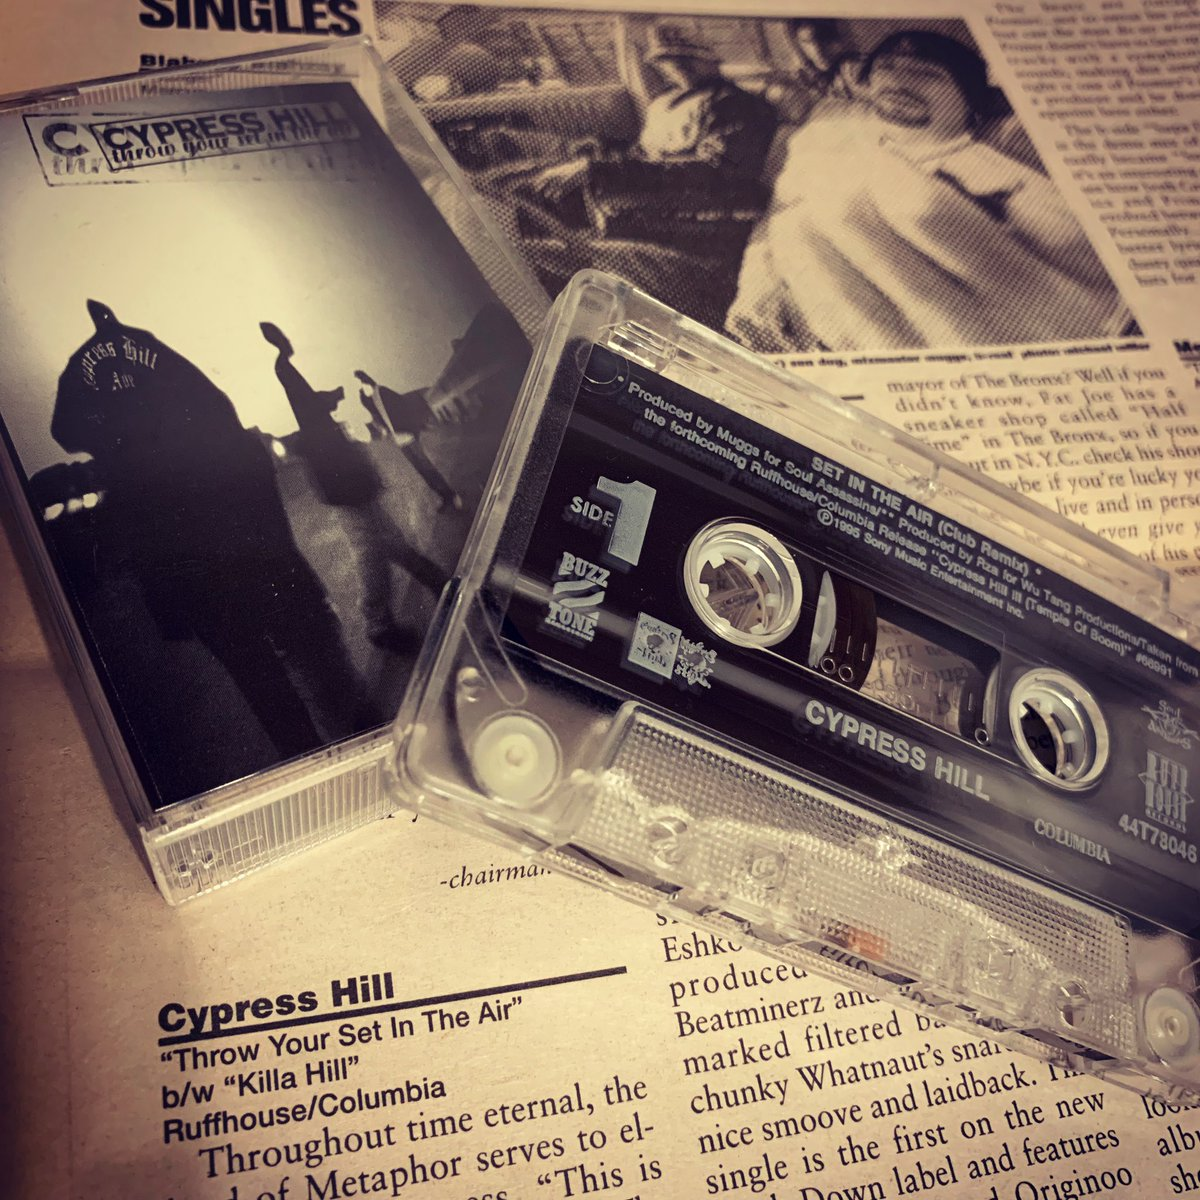 @cypresshill - Throw Your Set In The Air @B_Real @OGSenDog @DJ_Muggs @SoulAssassins #cassette #maxisingle #classic #hiphop #cypresshill #breal #sendog #djmuggs #throwyoursetintheair #killahill #rza #ugod #soulassassins #buzztone #ruffhouse #columbia #records #hiphopgodspic.twitter.com/ww7gvm6ogB